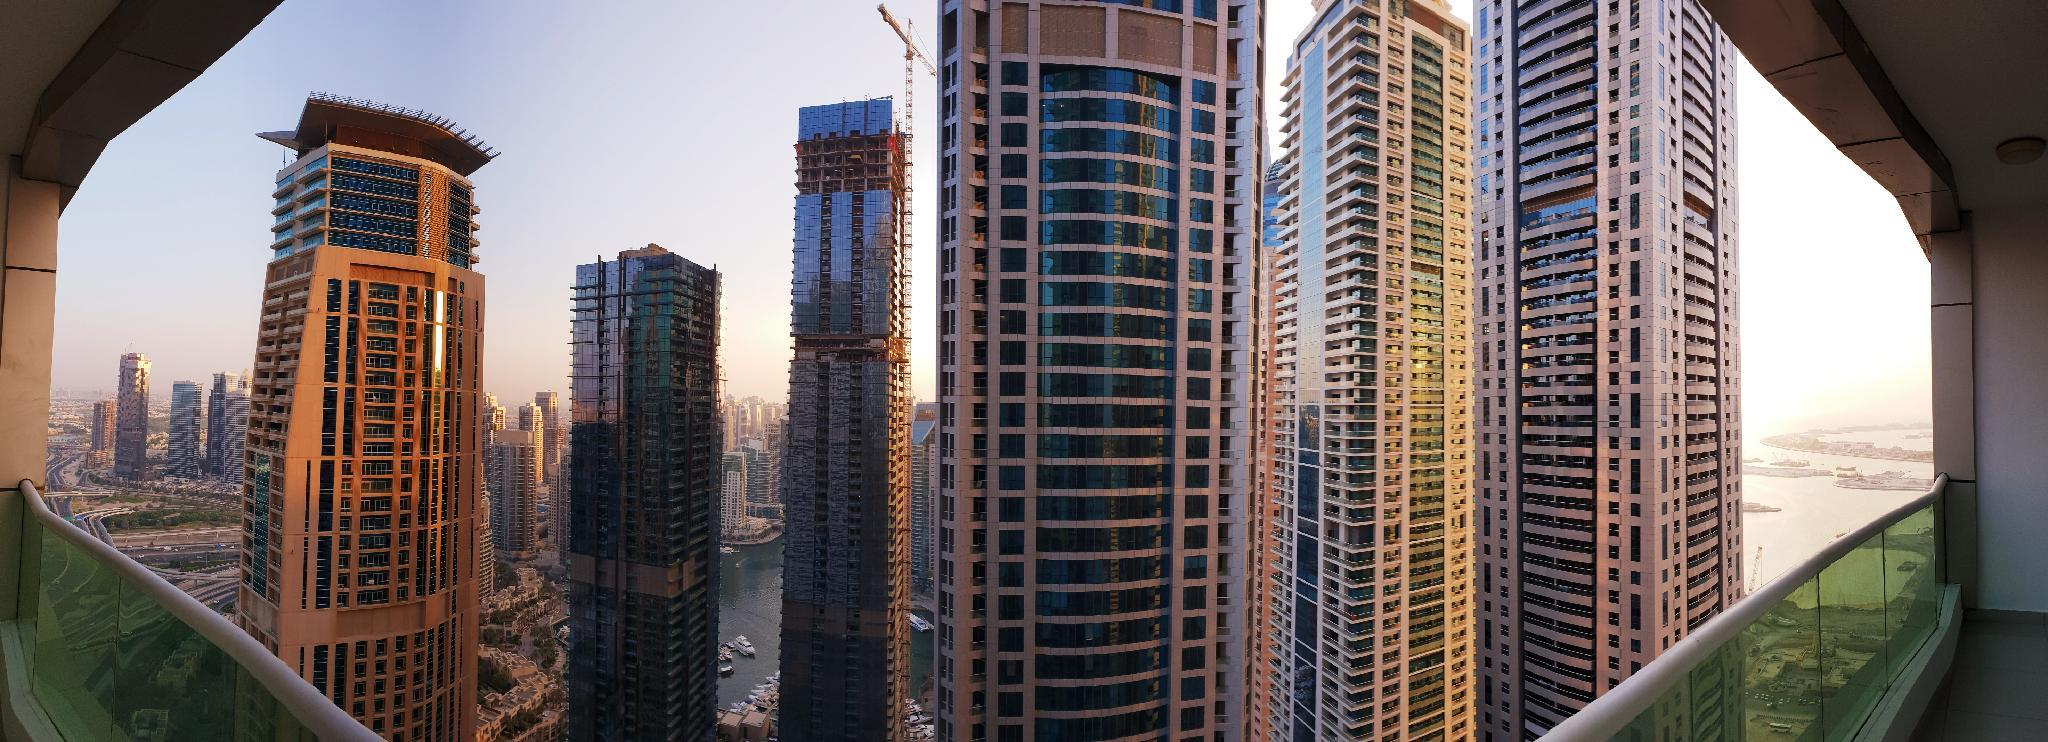 180 Degree View Of Palm And Marina